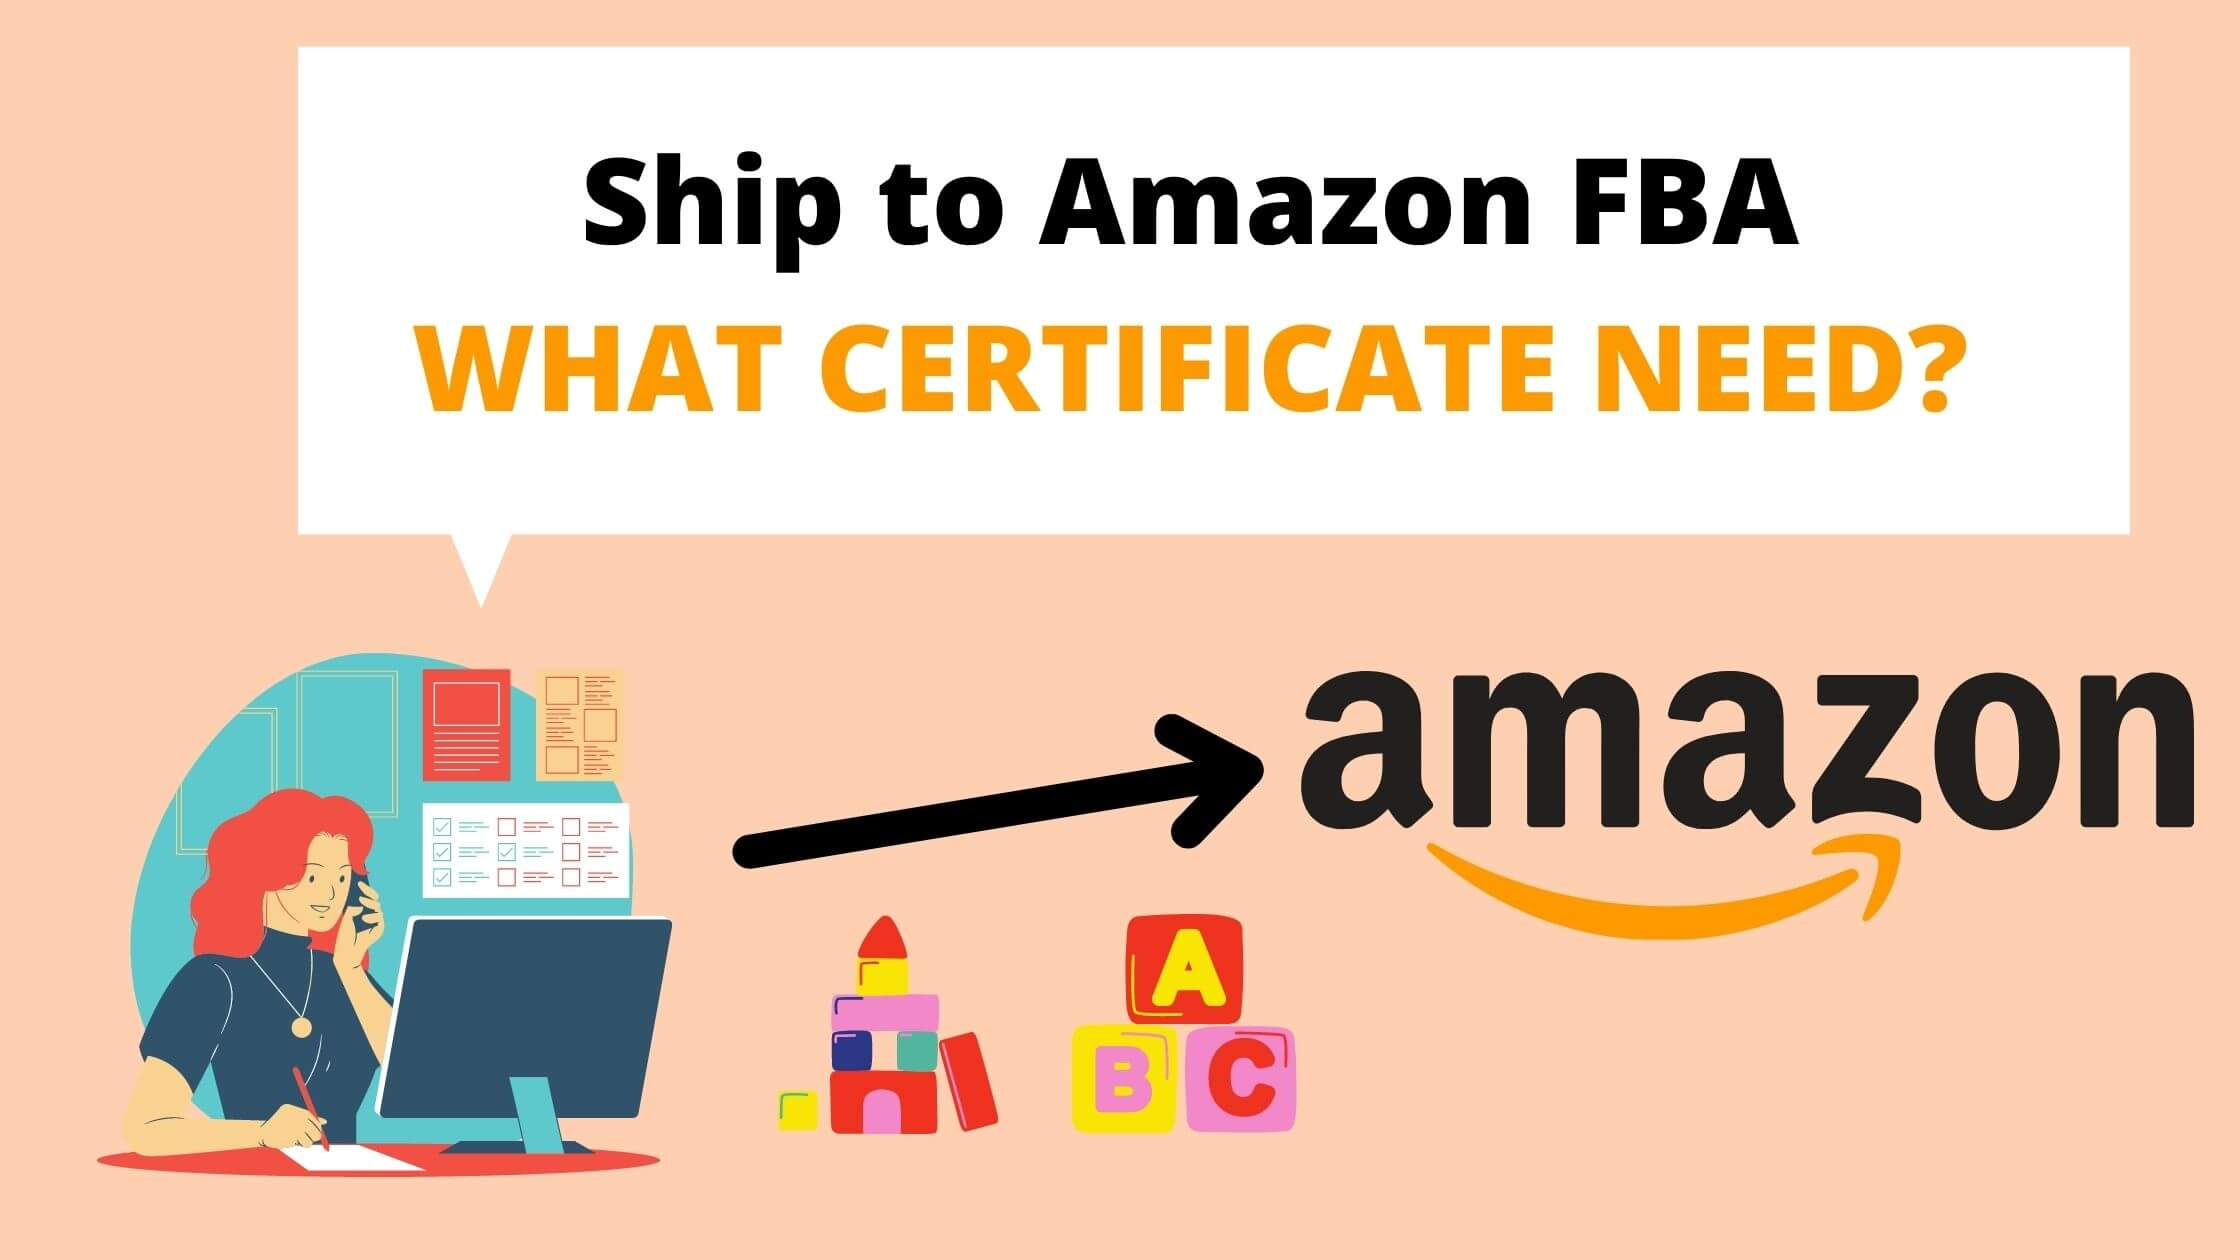 Ship to Amazon FBA WHAT CERTIFICATE NEED